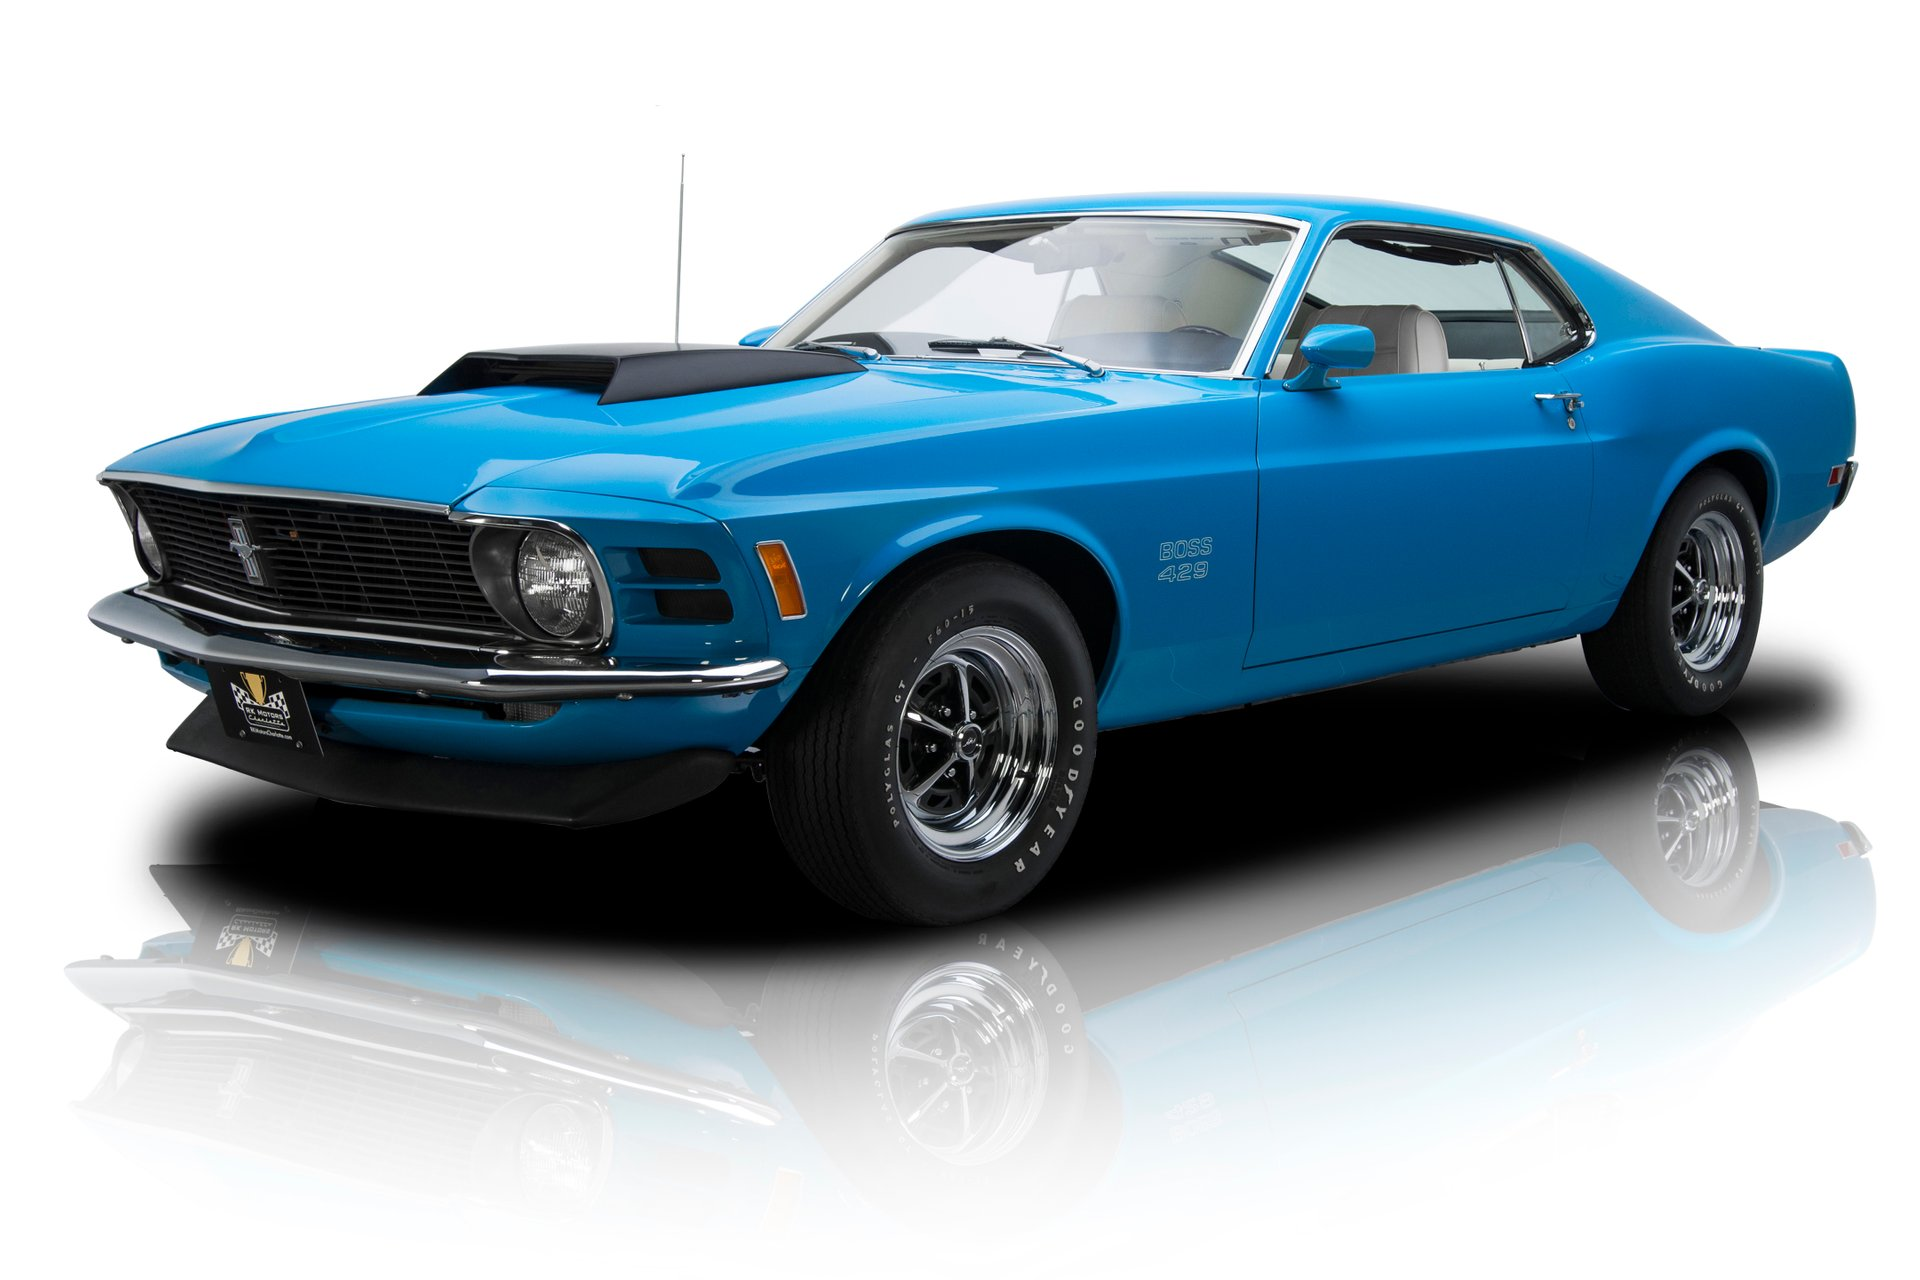 Documented restored investment grade grabber blue mustang boss 429 v8 4 speed